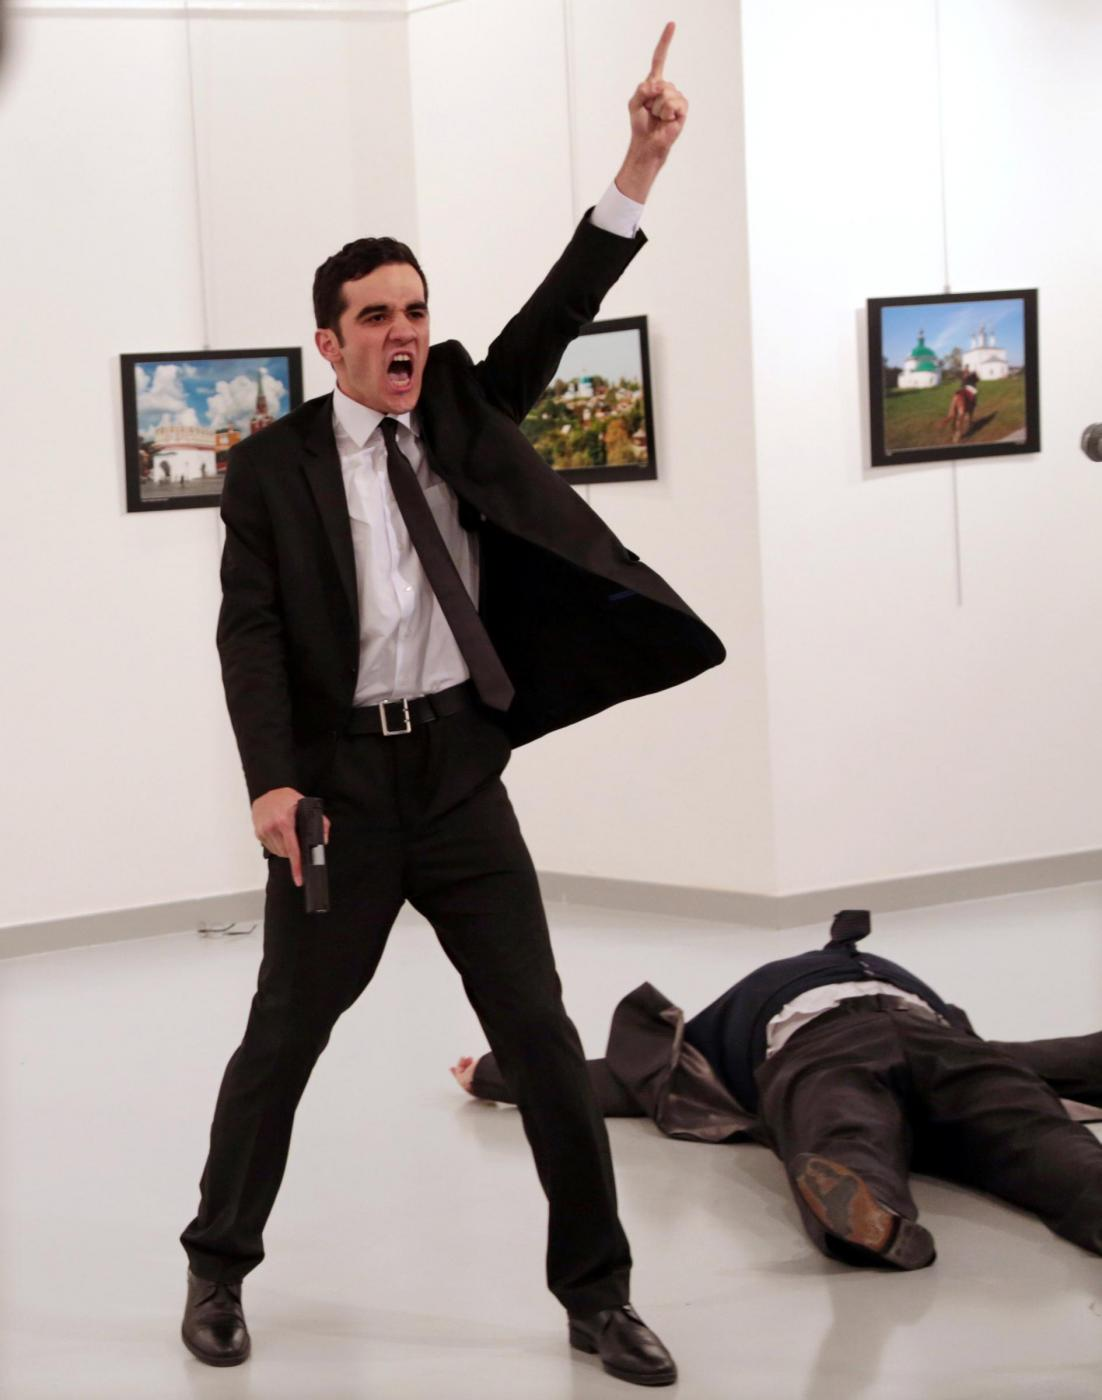 World Press Photo Awards 2017 foto vincitrice